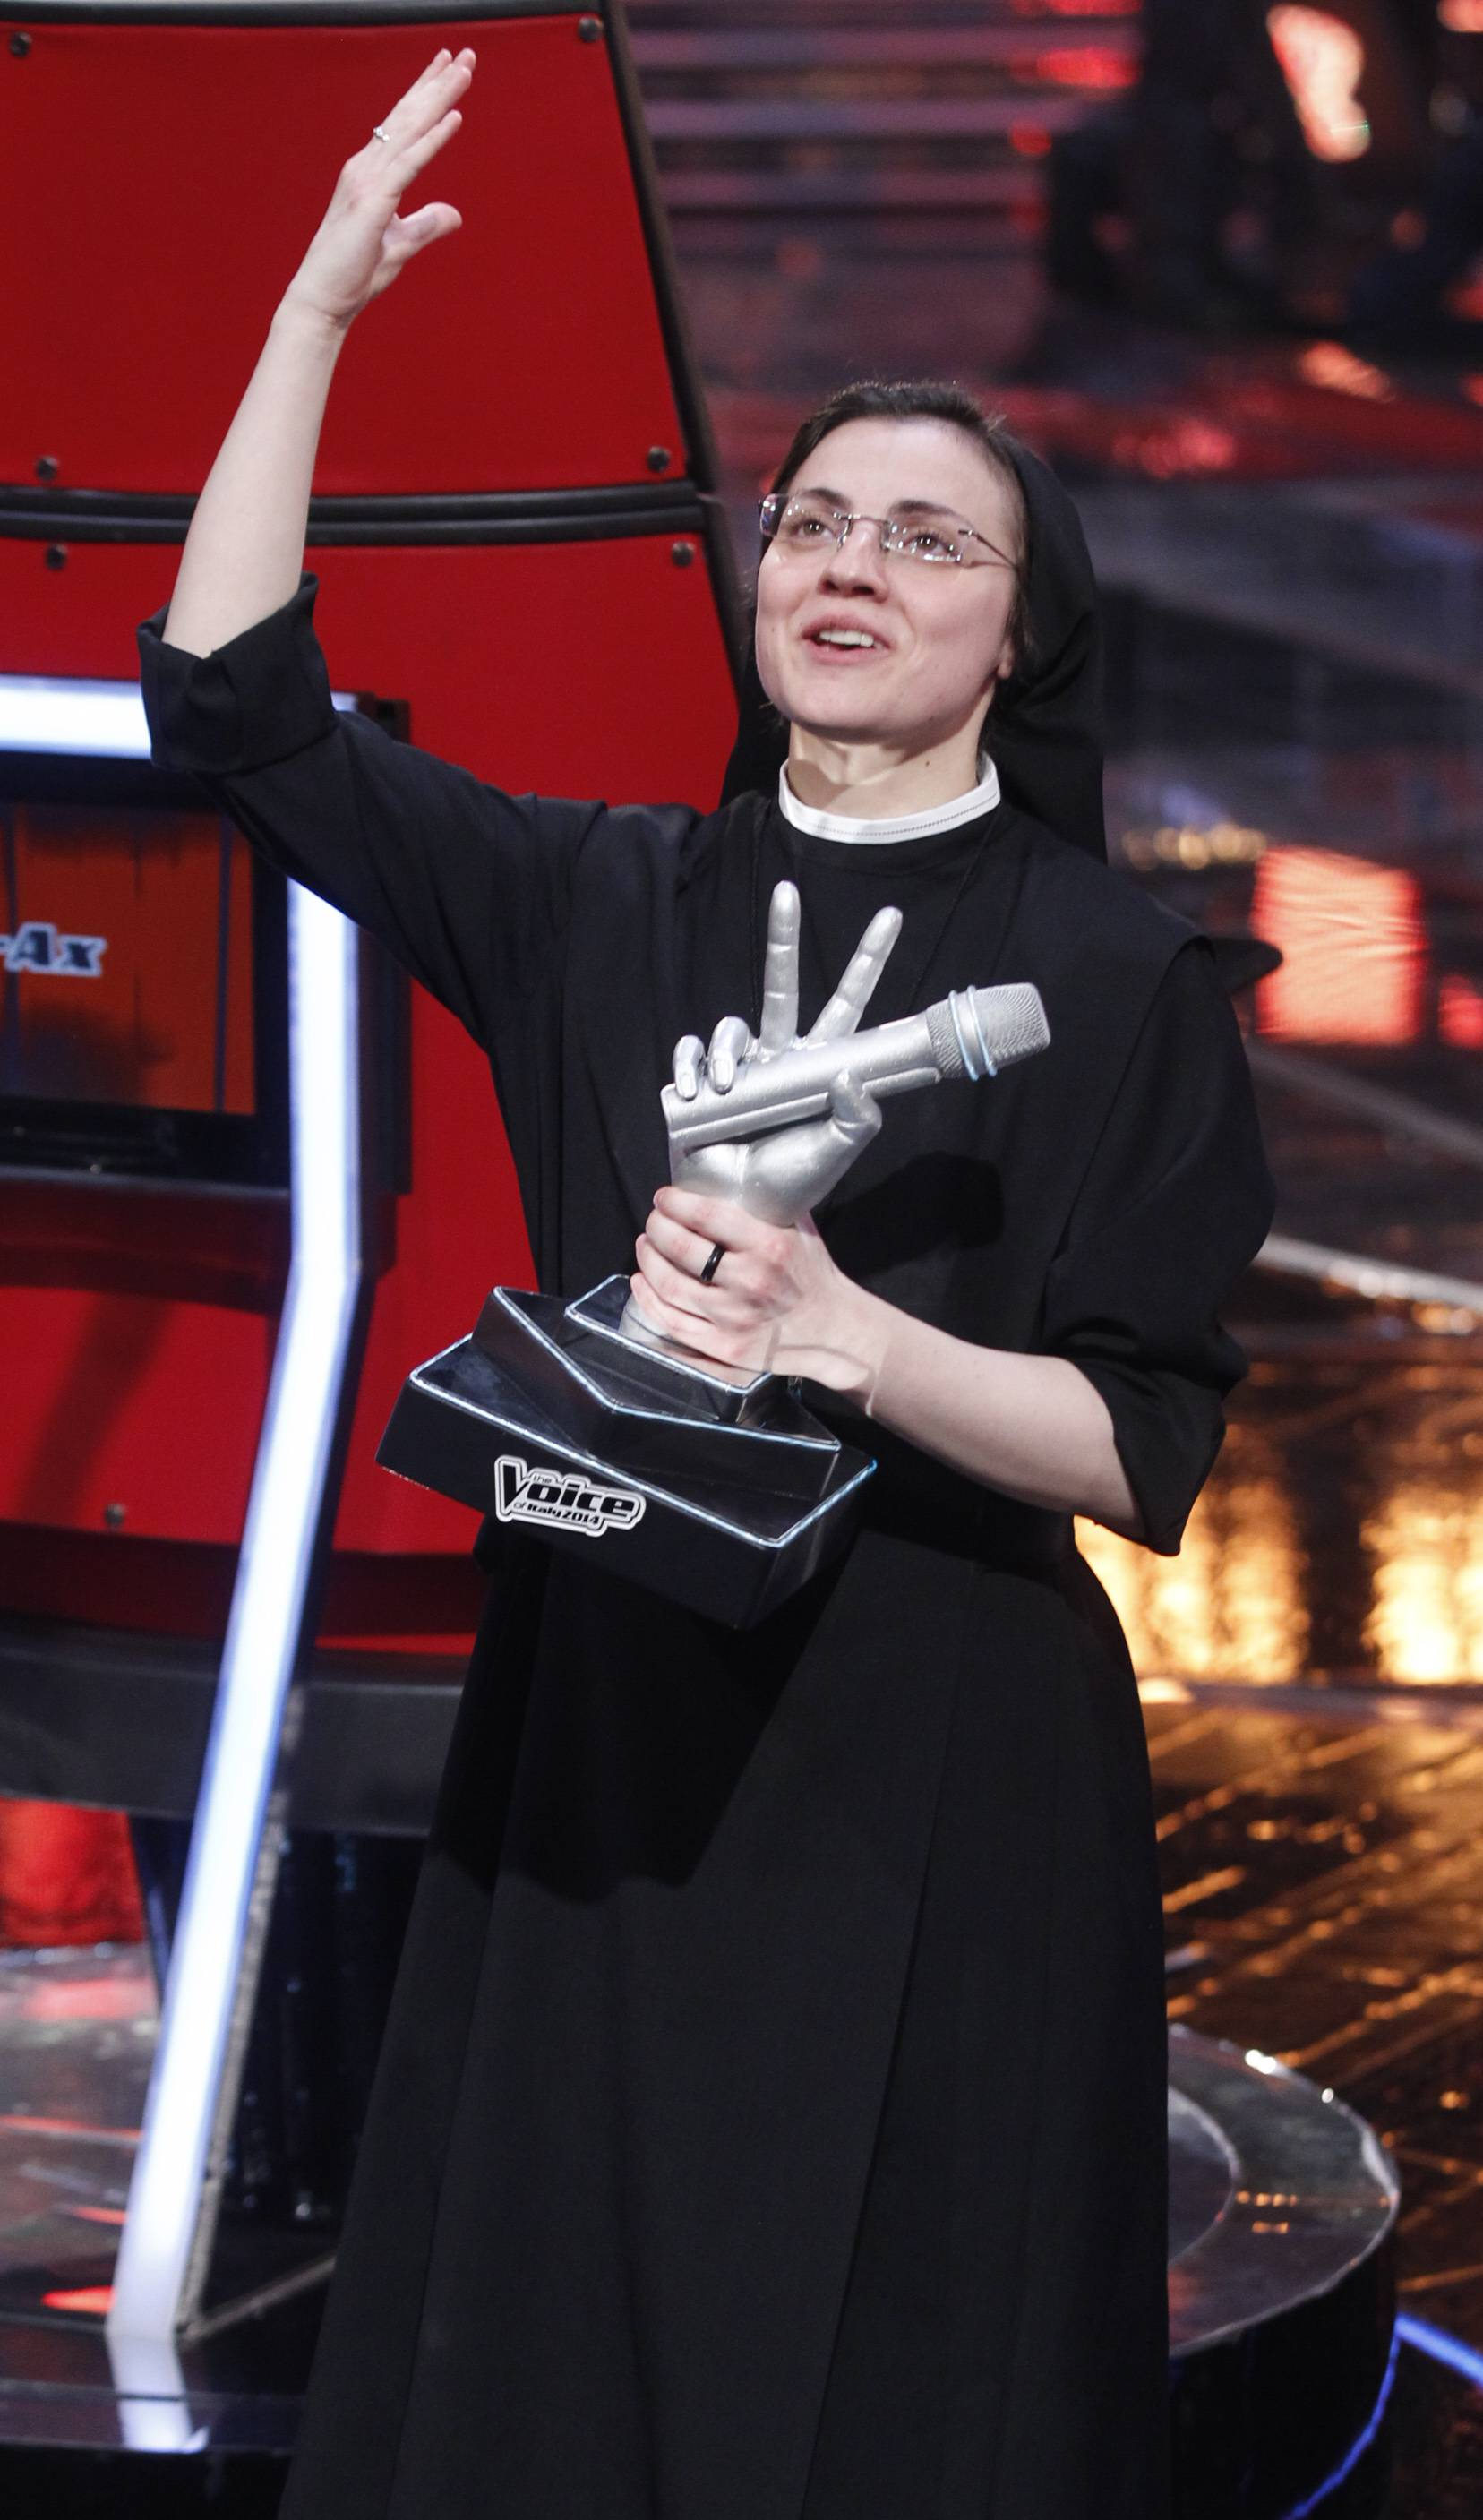 "Sister Cristina Scuccia won the final of the Italian version of the TV talent show ""The Voice"" in Milan, Italy, Thursday. With her full habit, sensible shoes and cheering nuns in her camp, Sister Cristina Scuccia made it to Thursday's finals after capturing attention, and millions of YouTube viewers, with her first-round performance in March."